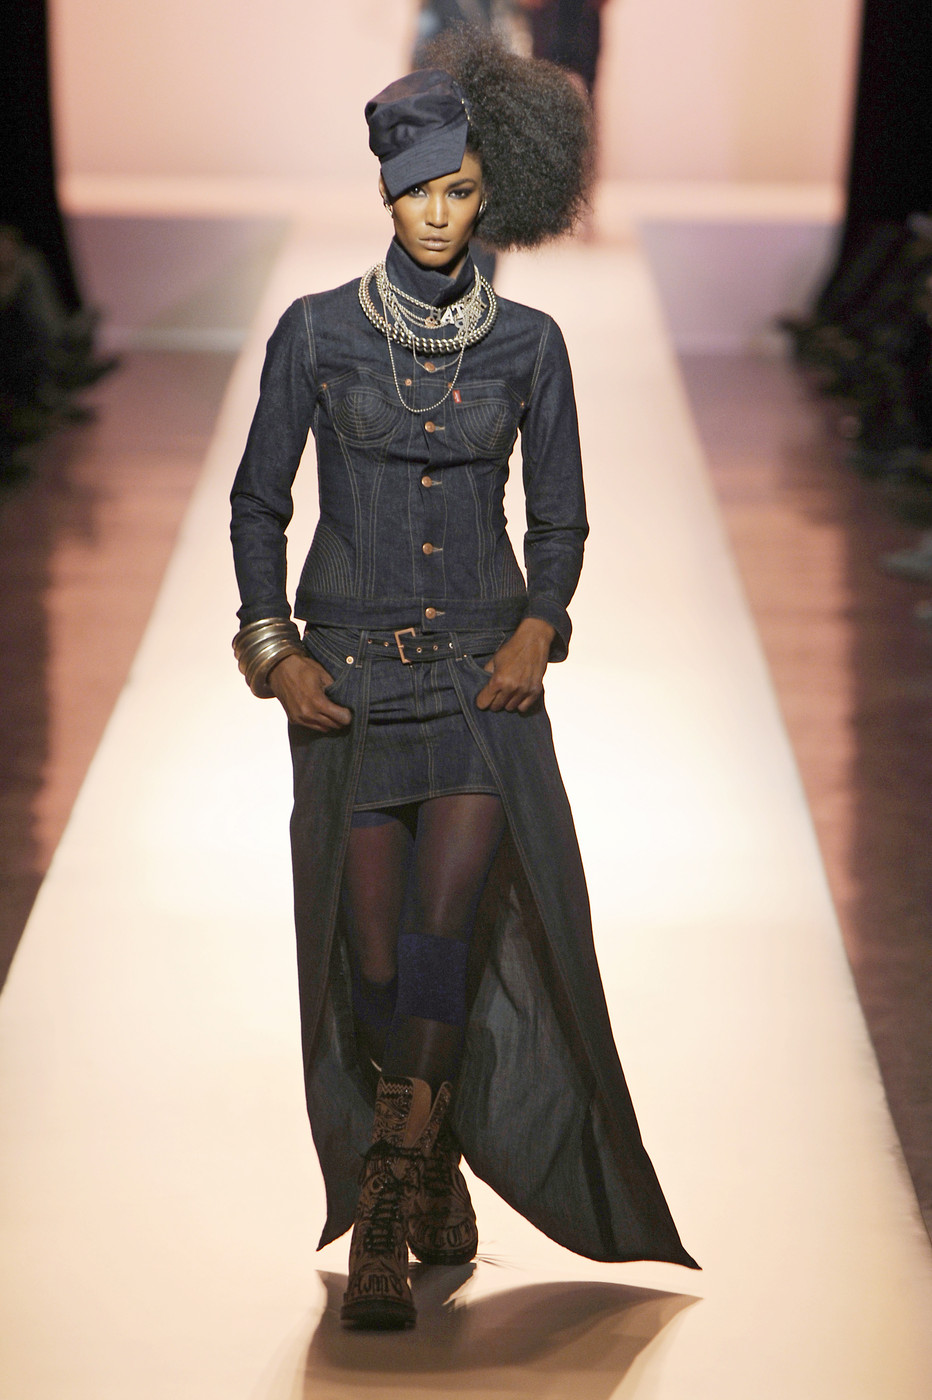 jean paul gaultier at paris fashion week spring 2010 livingly. Black Bedroom Furniture Sets. Home Design Ideas